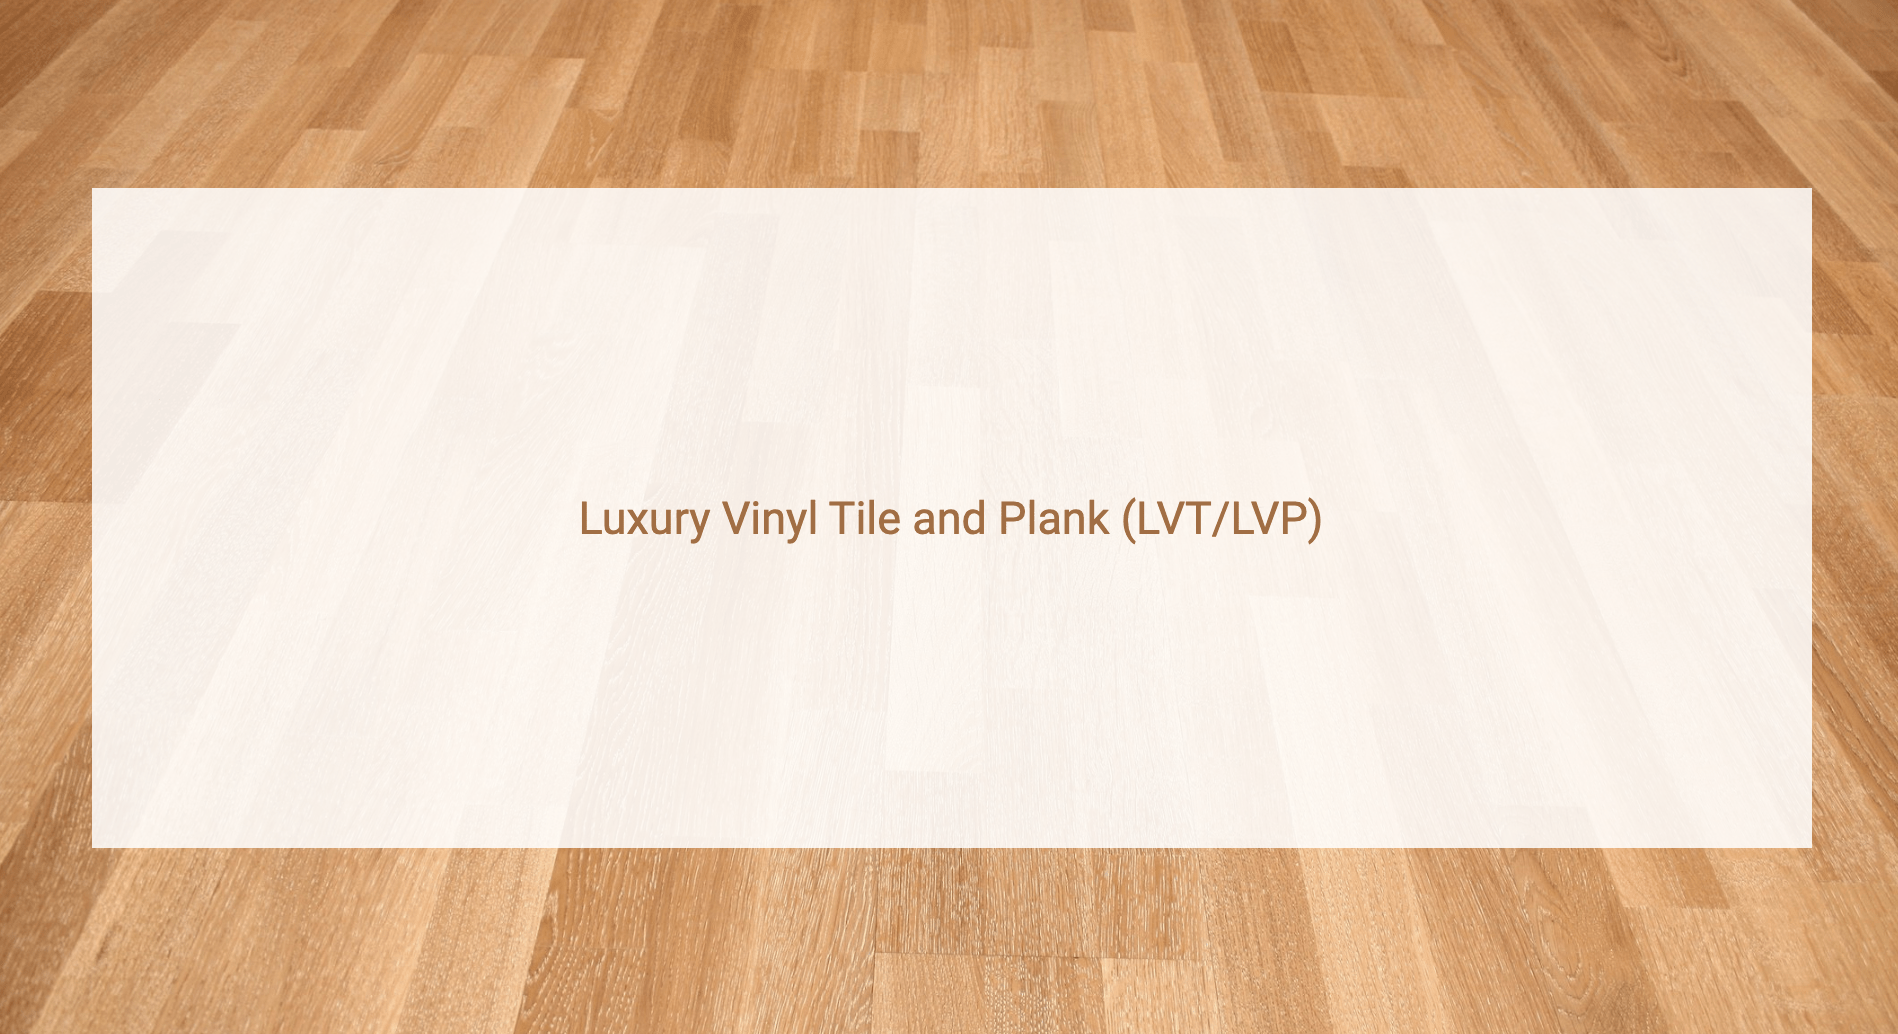 Luxury Vinyl Tile and Plank (LVT/LVP) in brown text with light brown wood-looking vinyl floor in the background